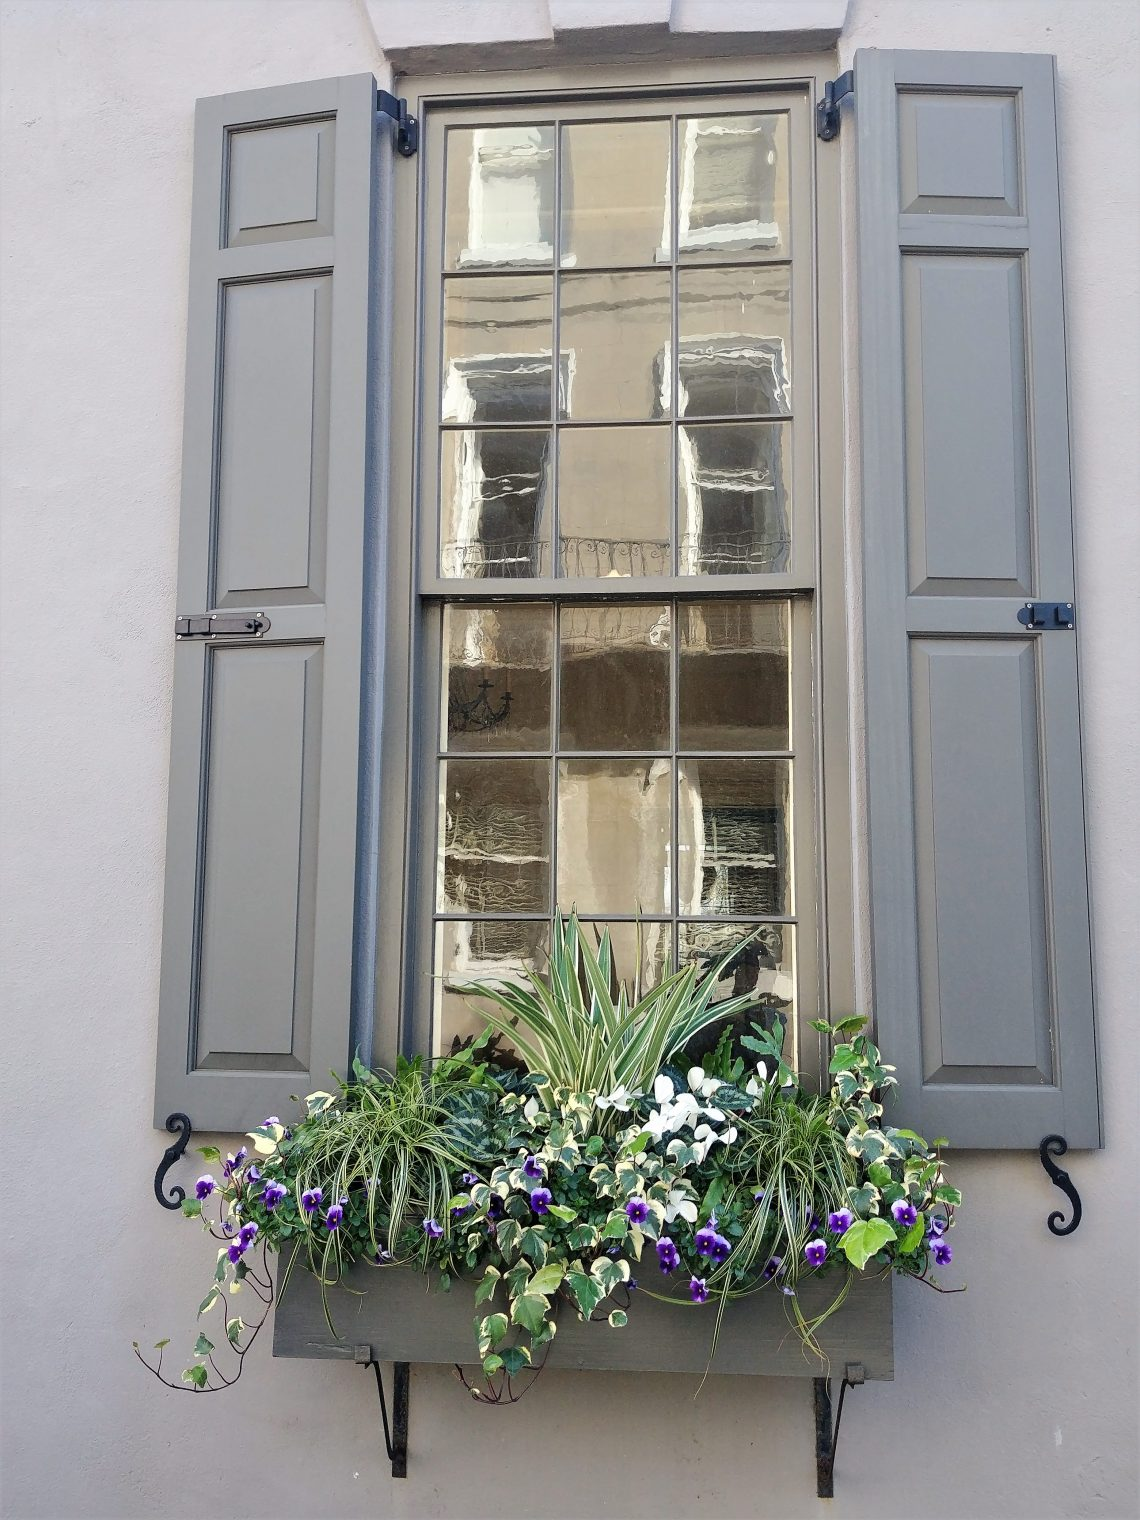 This beautiful window and flower box belong to 58 Meeting Street, which was built sometime before 1772. Caught in the reflection is 60 Meeting Street, across Tradd Street -- which, while built in the 1740s, in recent years has been well known for dressing up in hats on certain holidays (a witch's hat on Halloween and a Santa hat for Christmas).